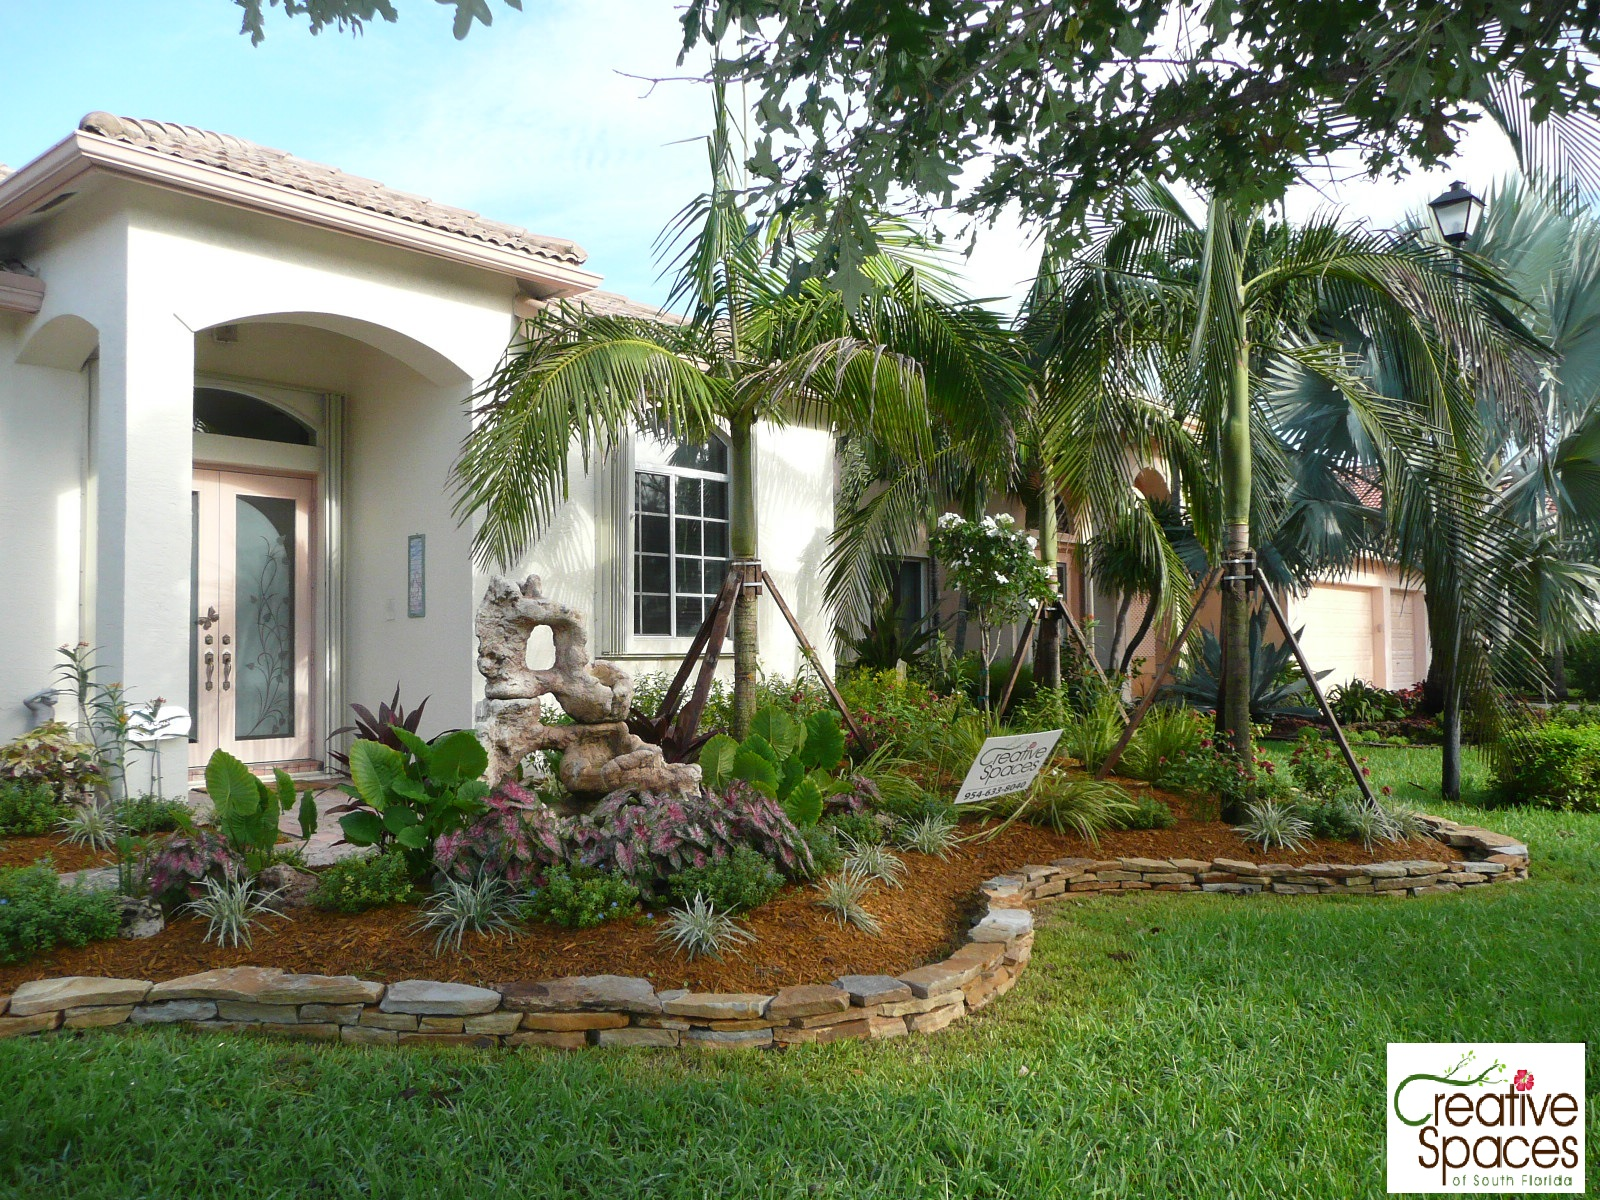 Landscaping landscaping ideas front yard south florida Florida landscape design ideas